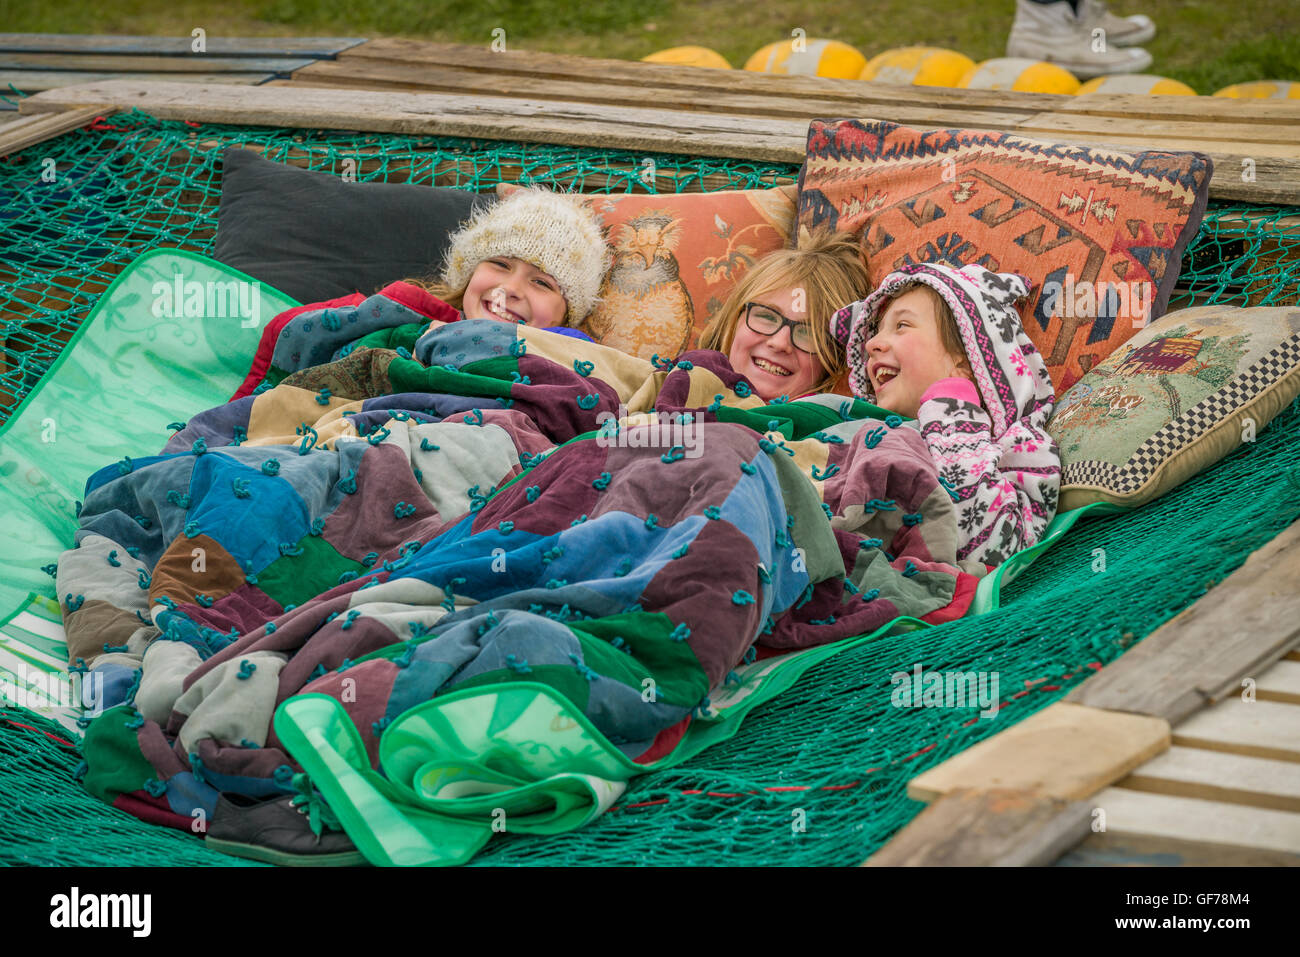 Children at The Annual Seaman's Festival, Reykjavik, Iceland - Stock Image